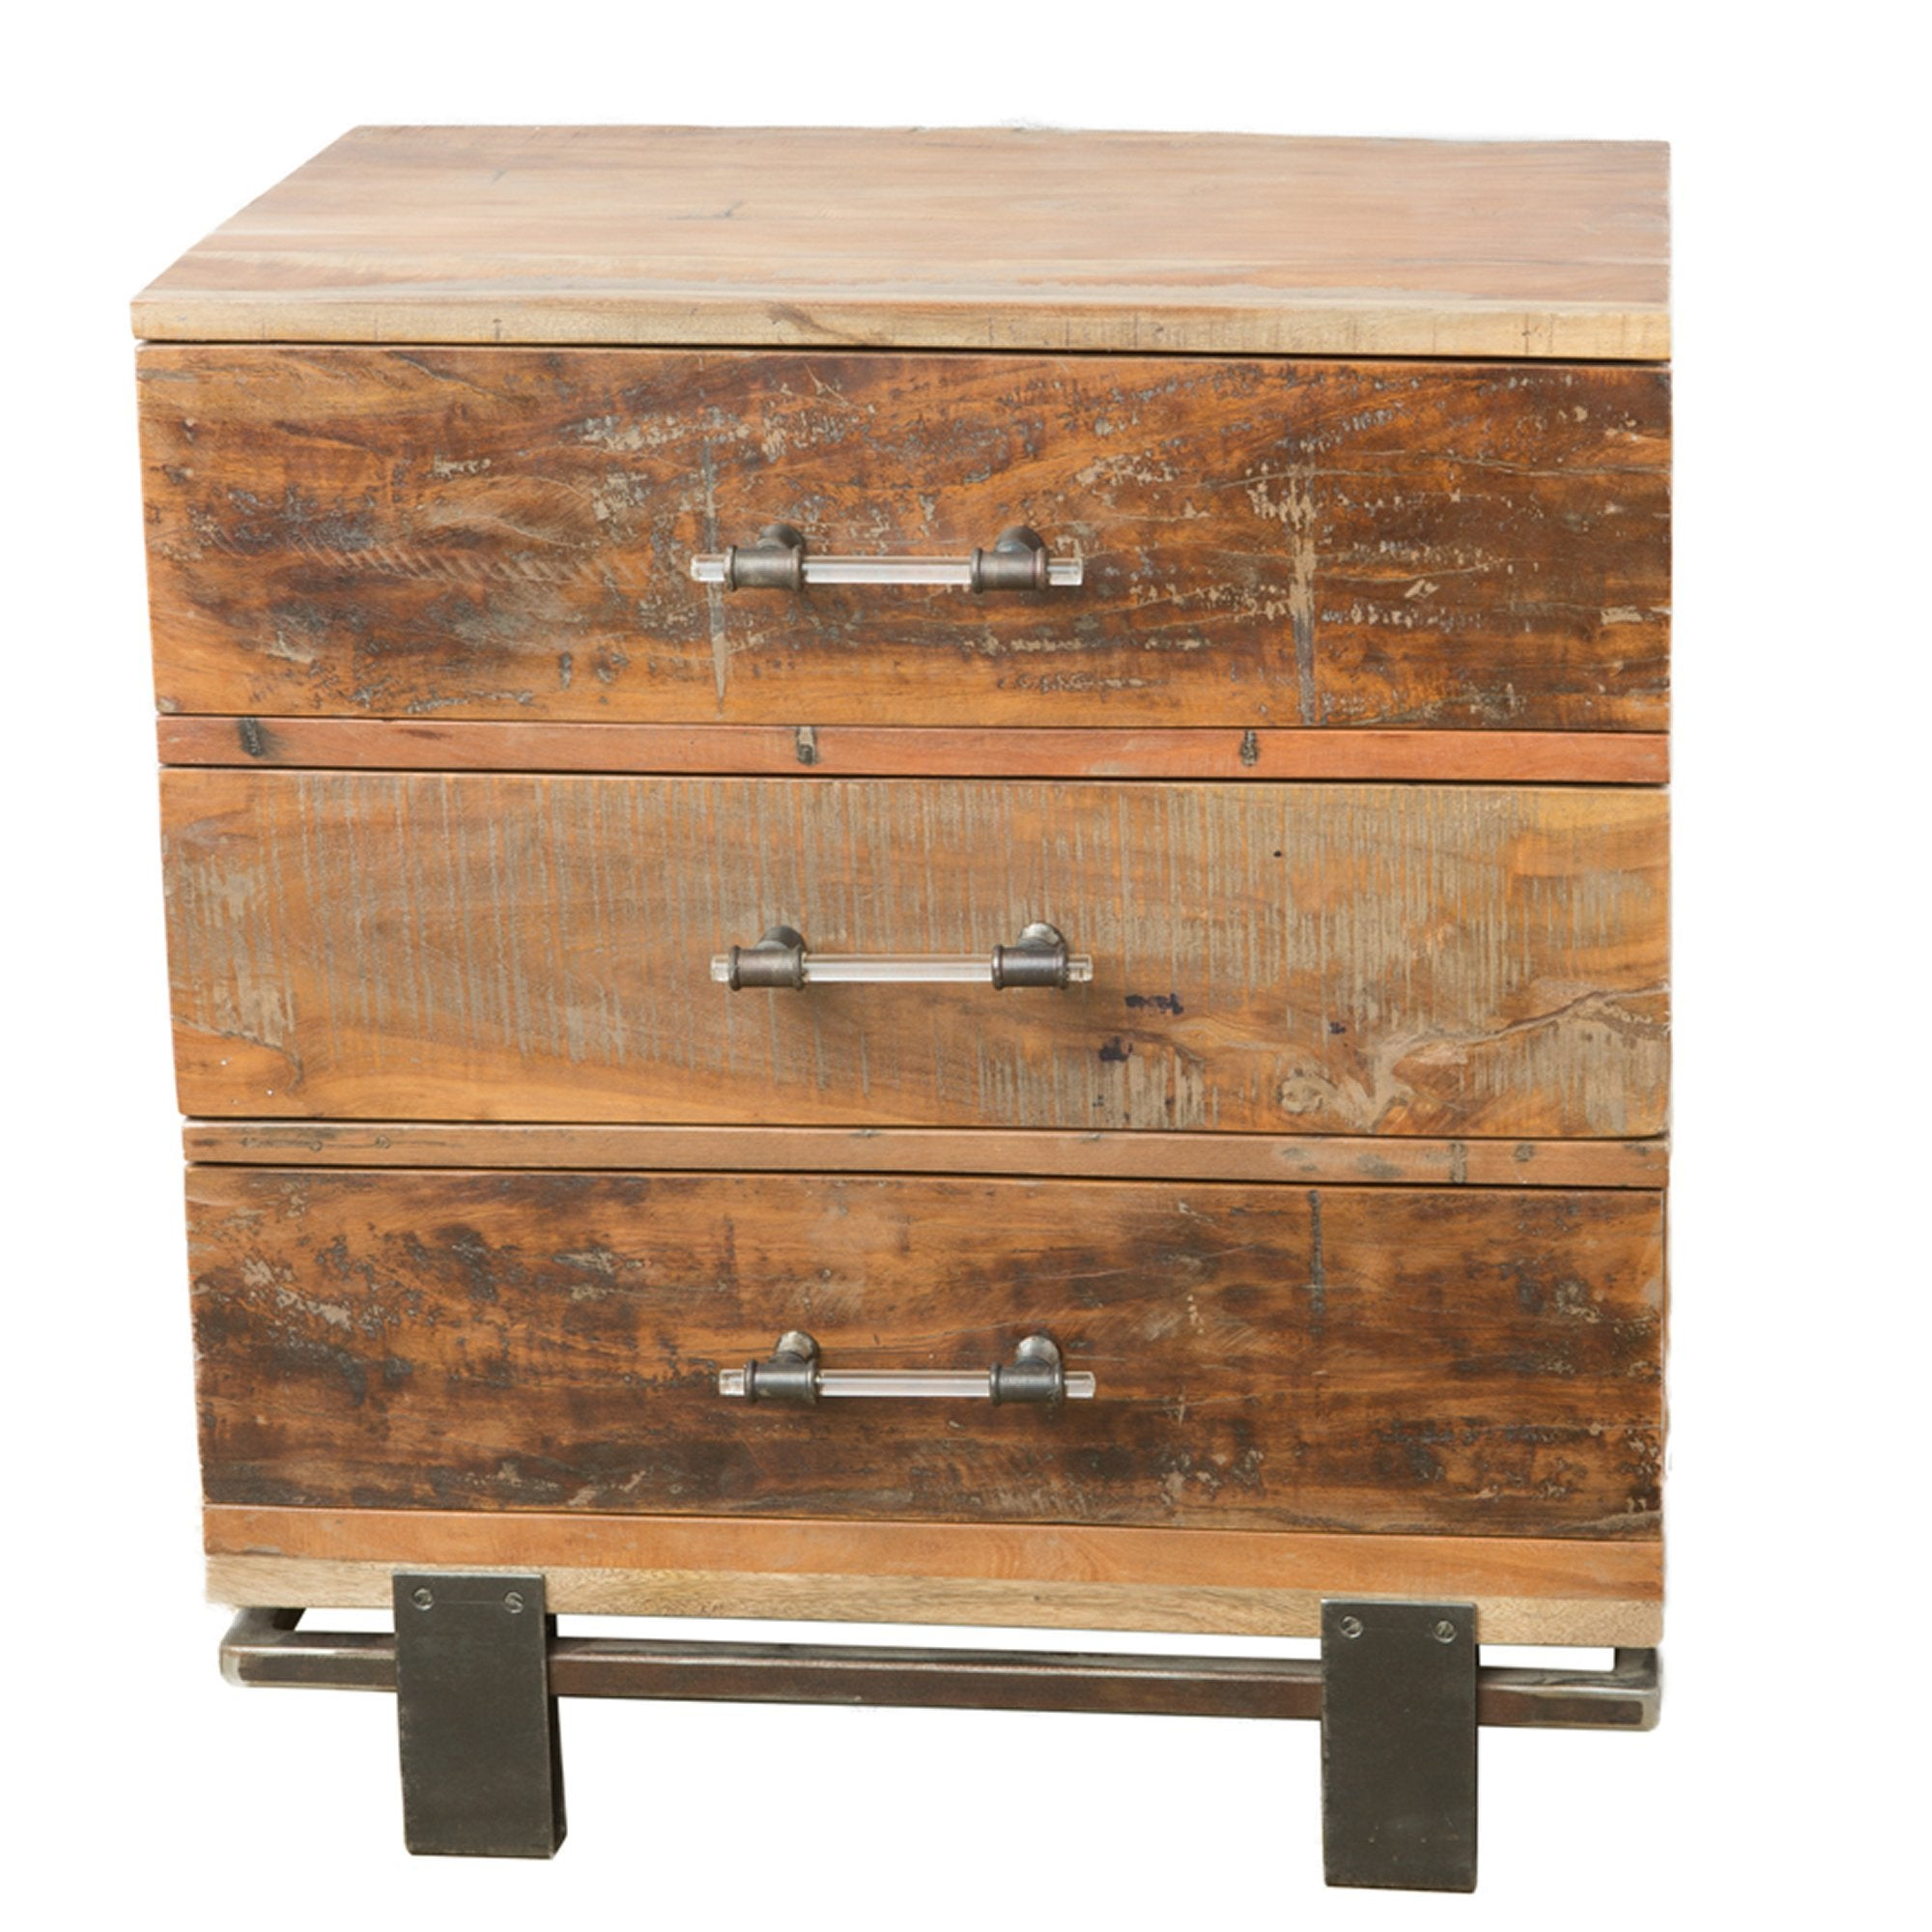 Rustic Industrial Salvage Iron And Wood Nightstand